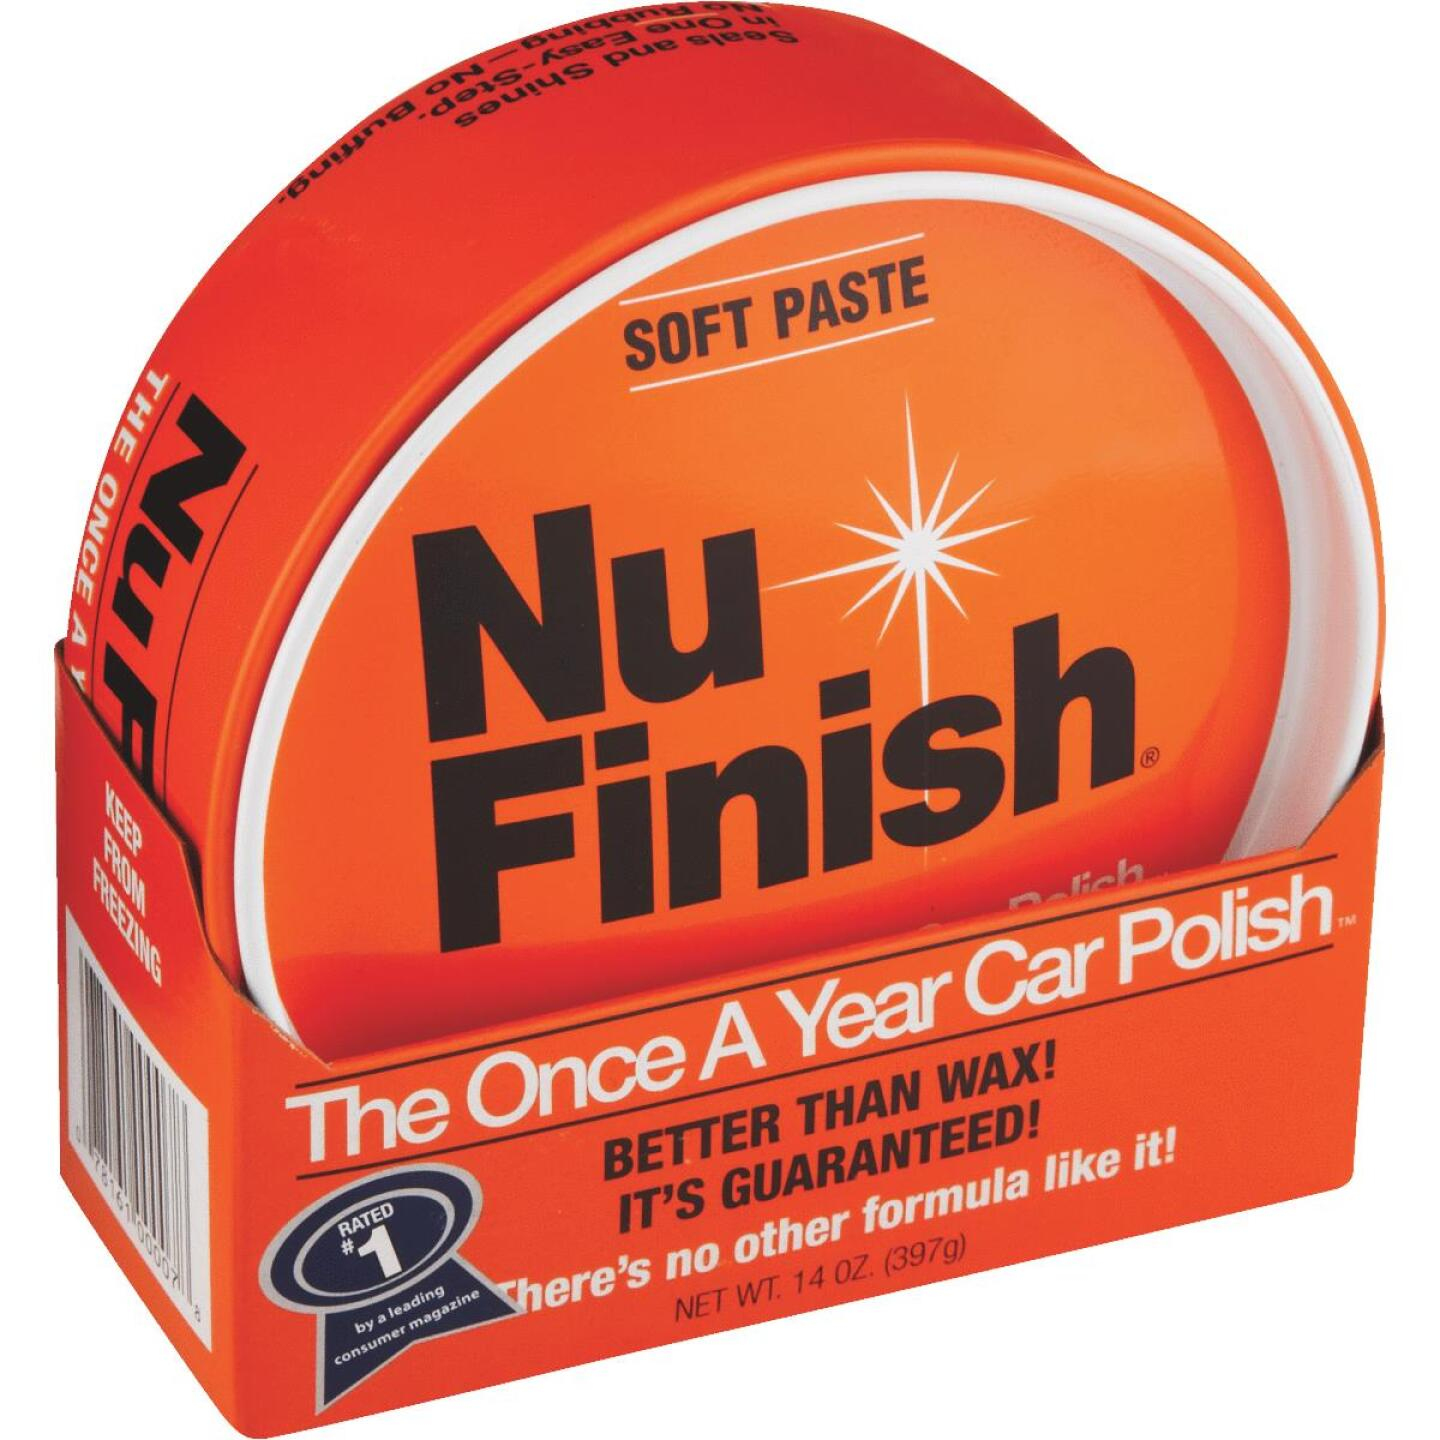 Nu Finish 14 oz Paste Car Wax Image 1